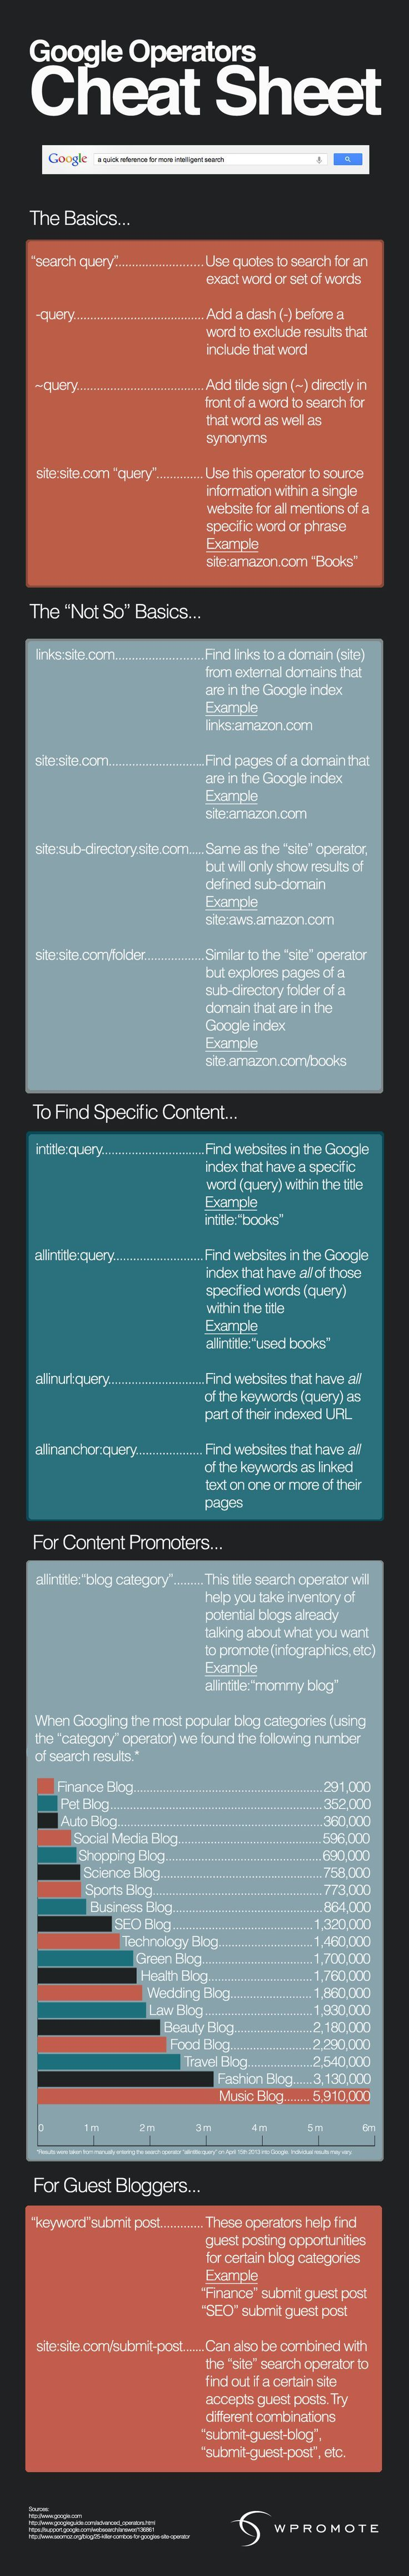 Cheat Sheet To Using Google Search More Effectively Infographic